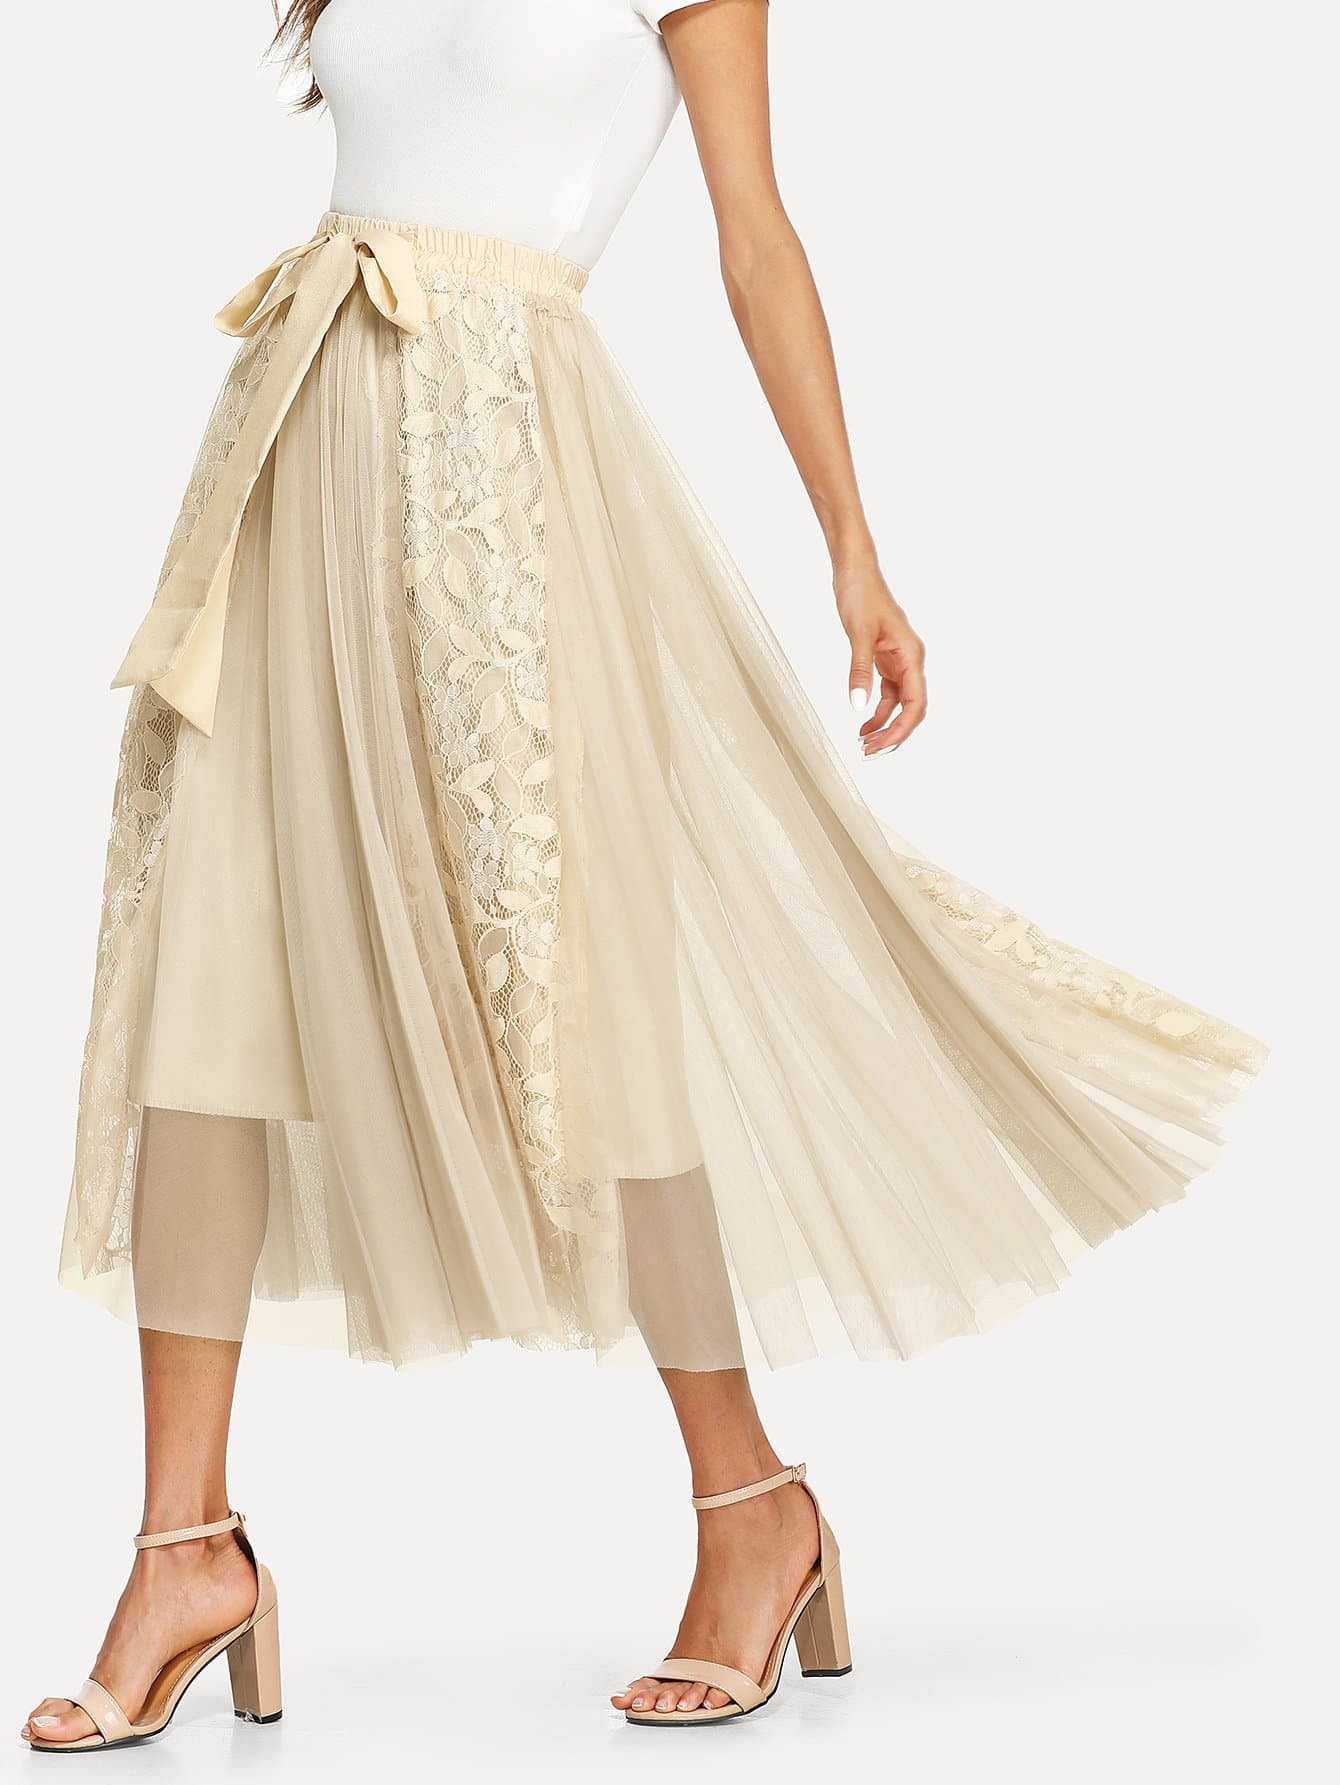 Bow Tie Waist Lace Contrast Mesh Skirt mesh contrast lace top